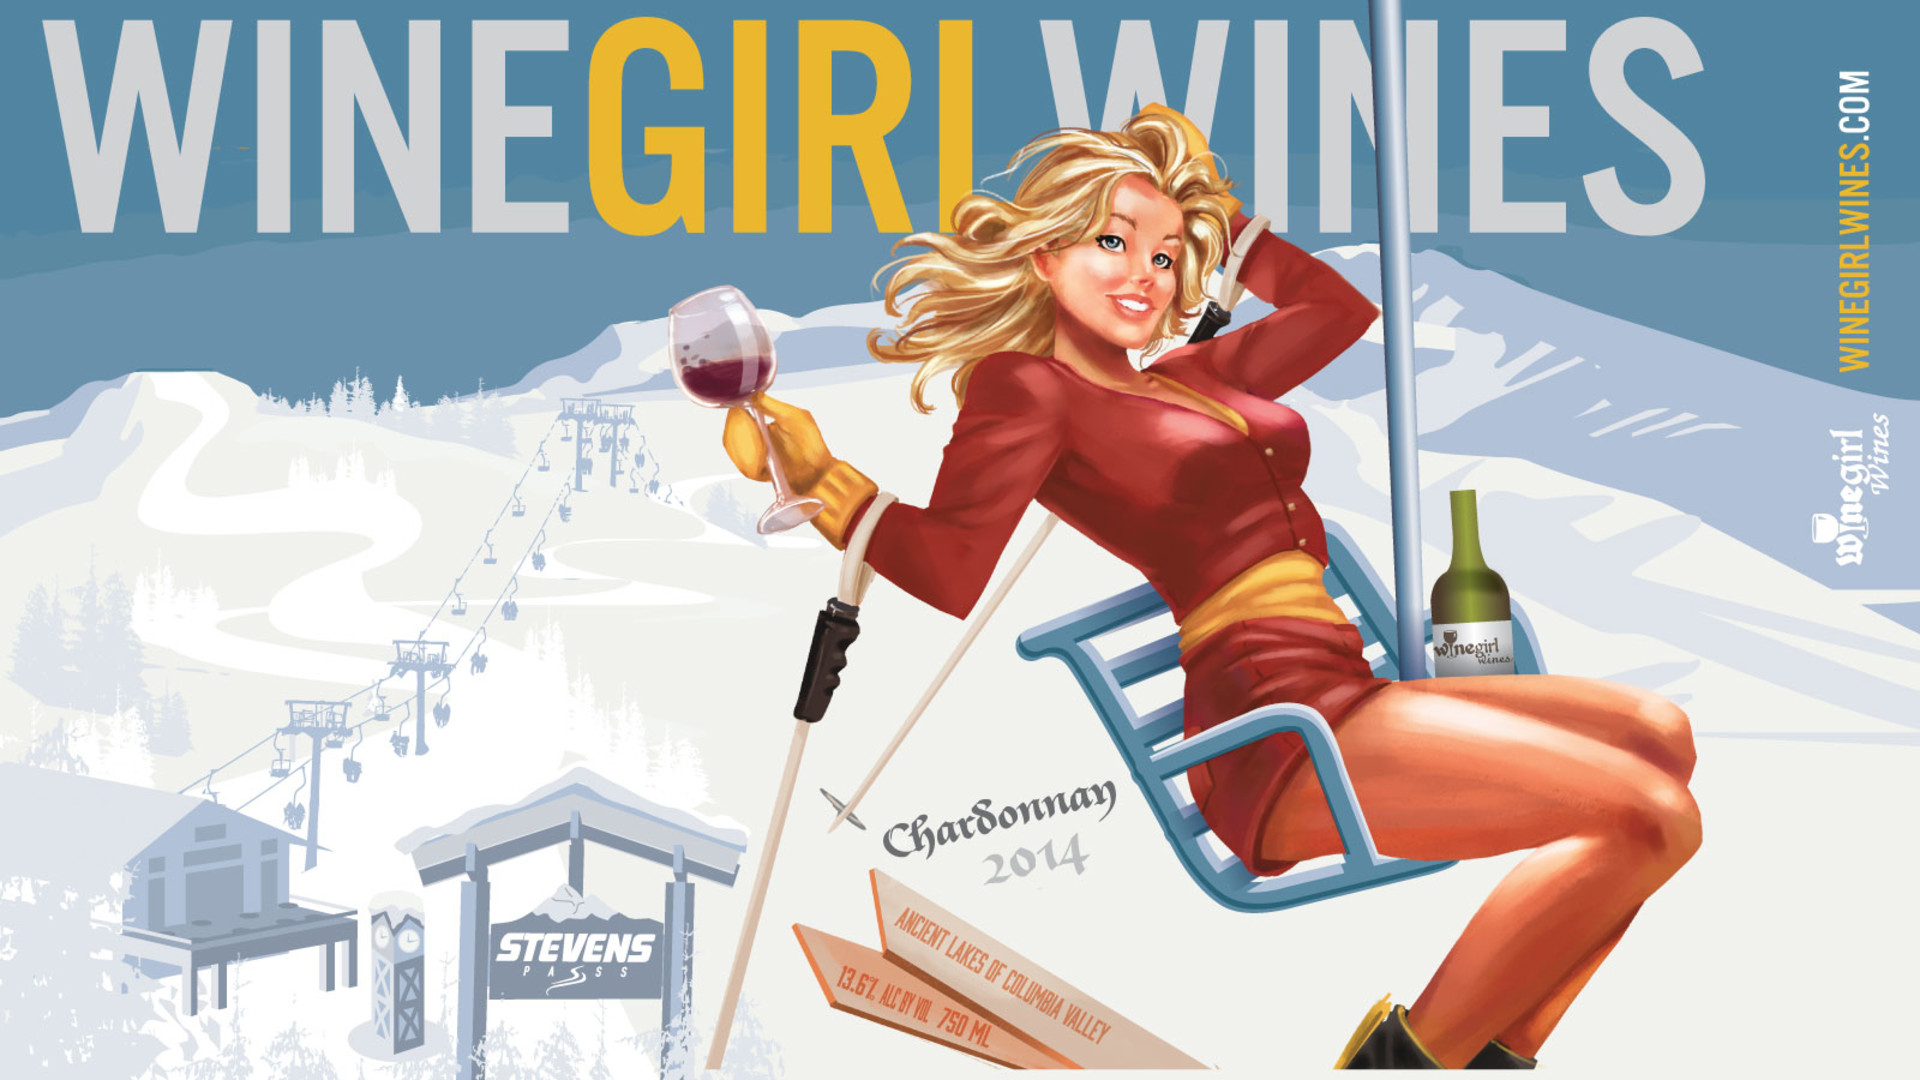 Wine Girl Wines